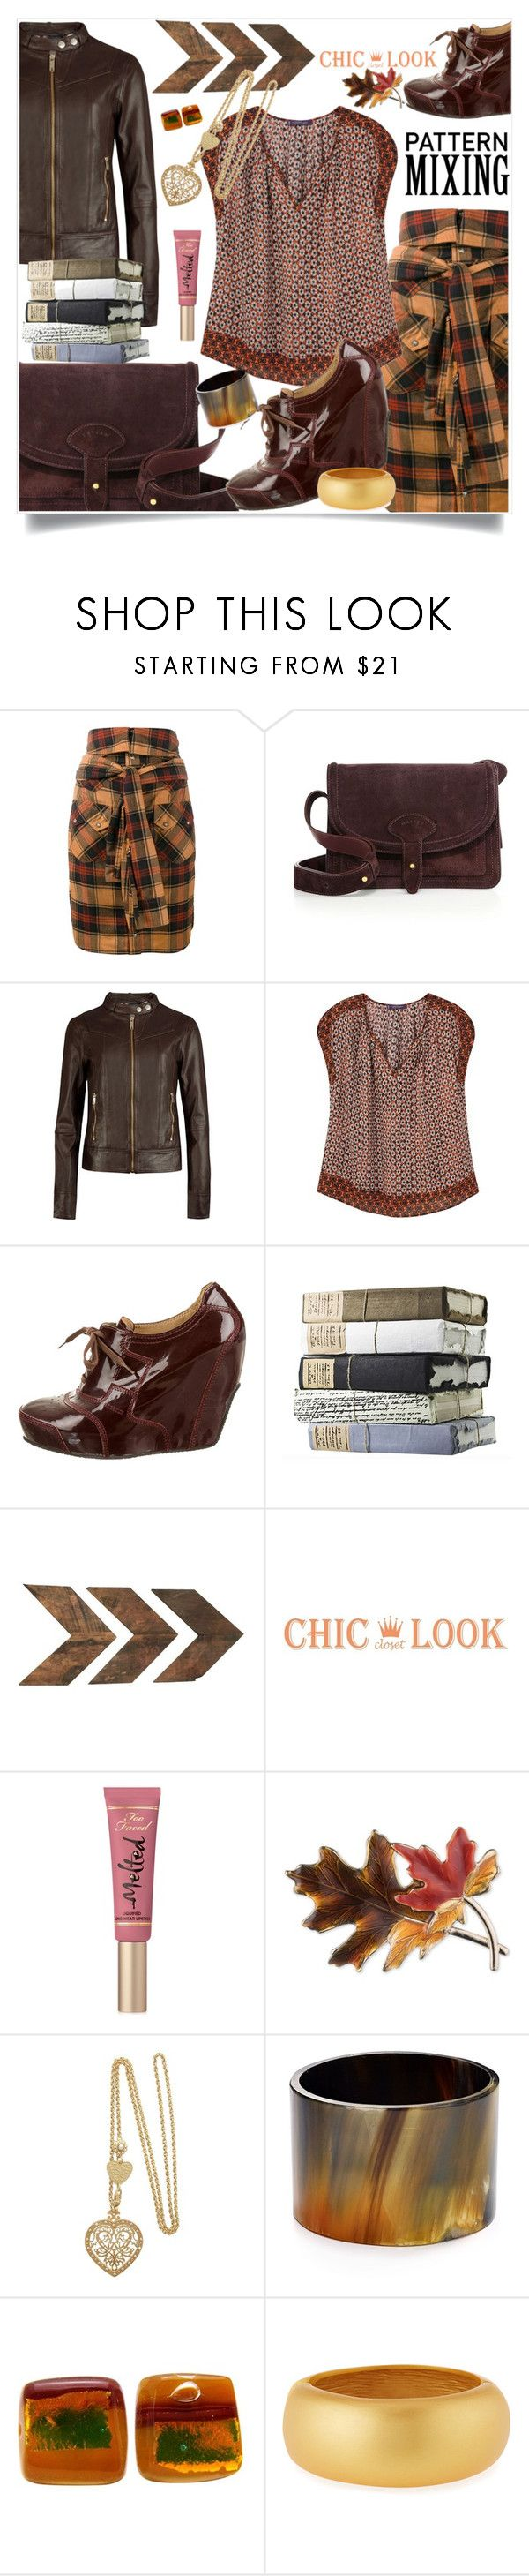 """Weekend"" by hani-bgd ❤ liked on Polyvore featuring Faith Connexion, Maiyet, Ted Baker, Violeta by Mango, Dries Van Noten, WALL, Too Faced Cosmetics, Anne Klein, Robert Lee Morris and Kenneth Jay Lane"